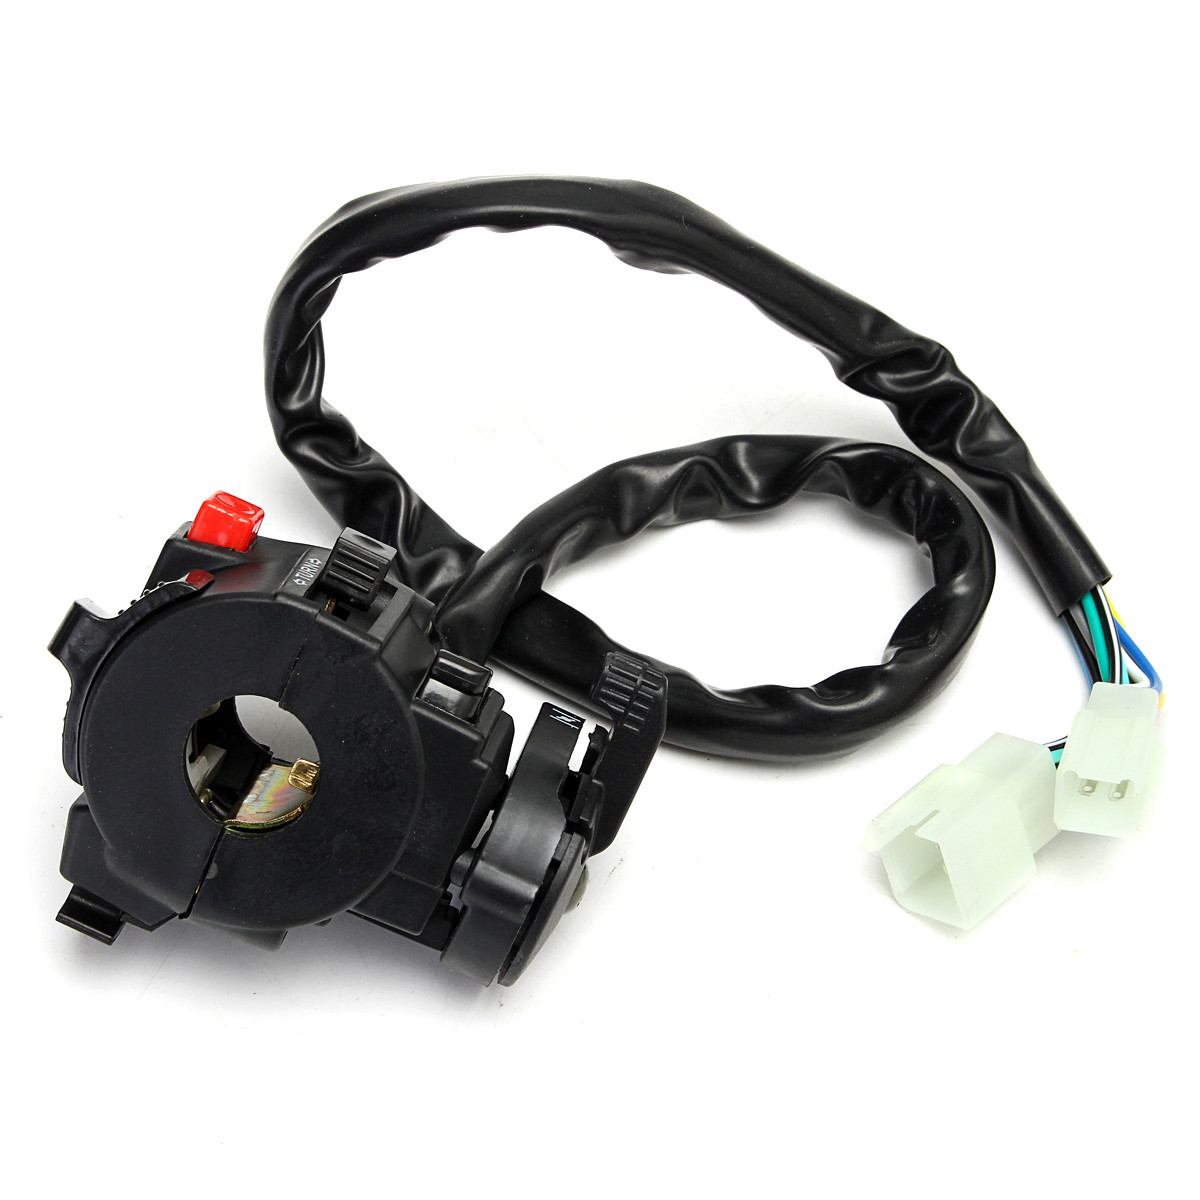 Complete Electrics Wiring Harness For Chinese Dirt Bike Atv Quad 150 China Carburetor 1 X Stator Motor Magneto Generator Charging Coil 8 Pole 5 Wires 3 Fixing Holes